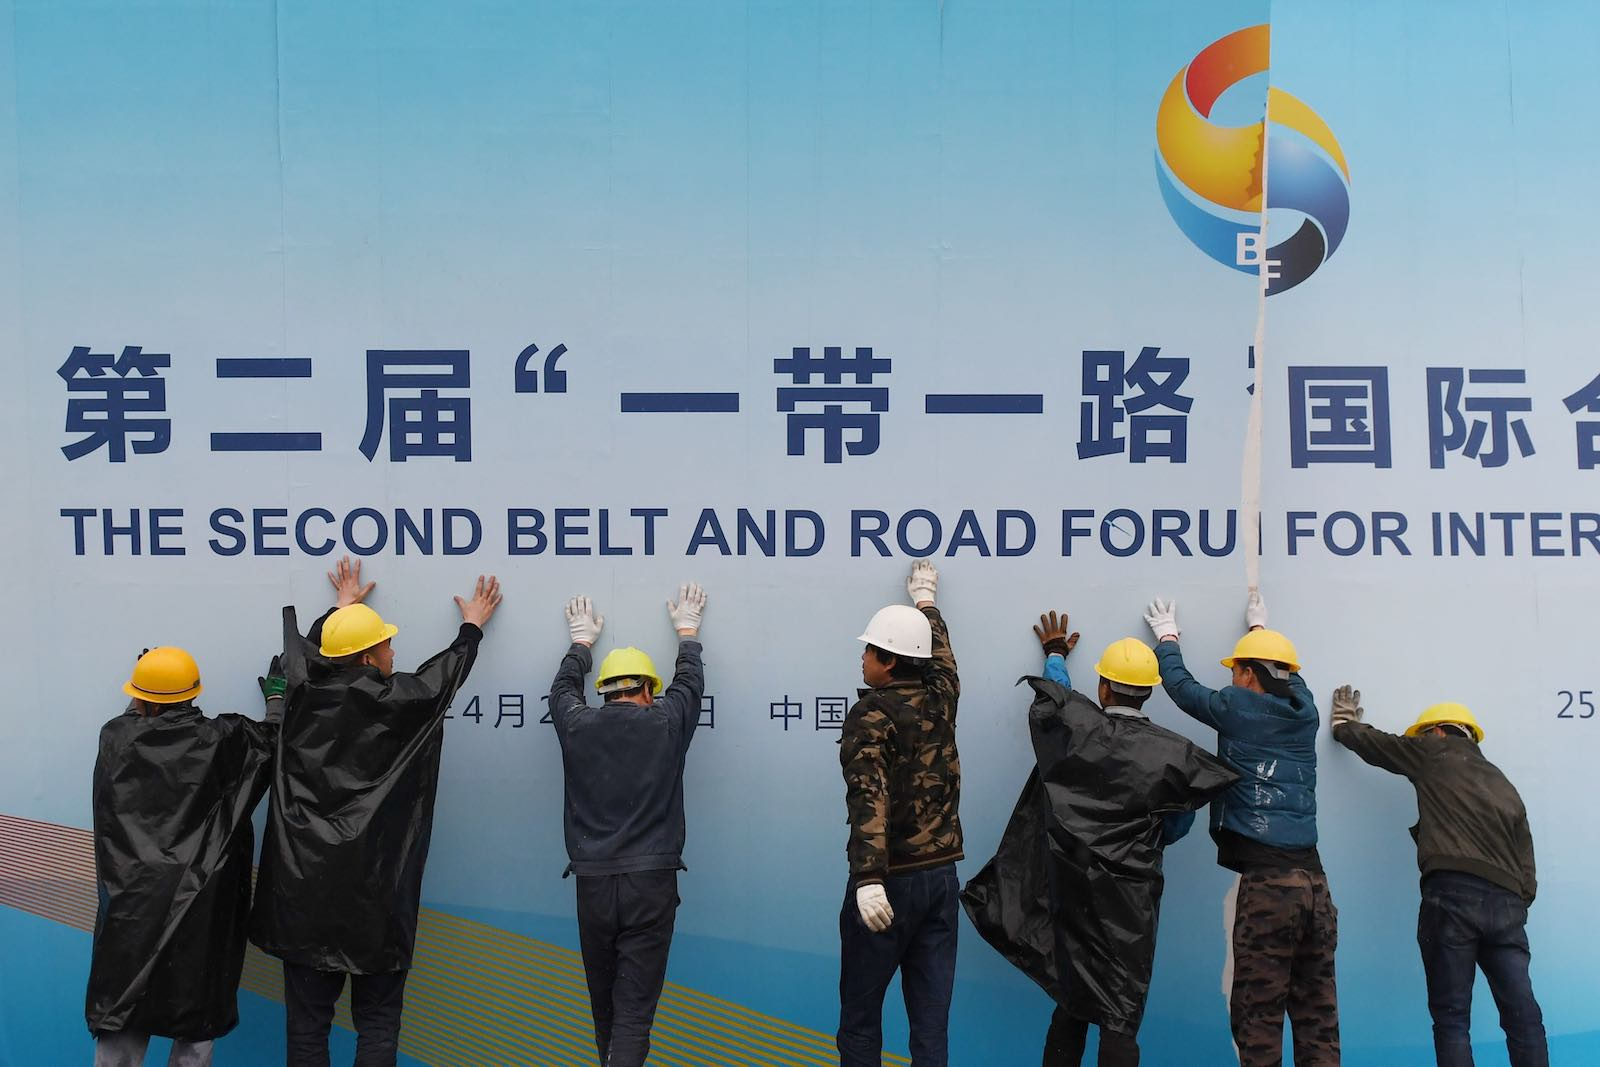 Workers take down a Belt and Road Forum panel outside the venue of the forum in Beijing in April (Photo: Greg Baker via Getty)